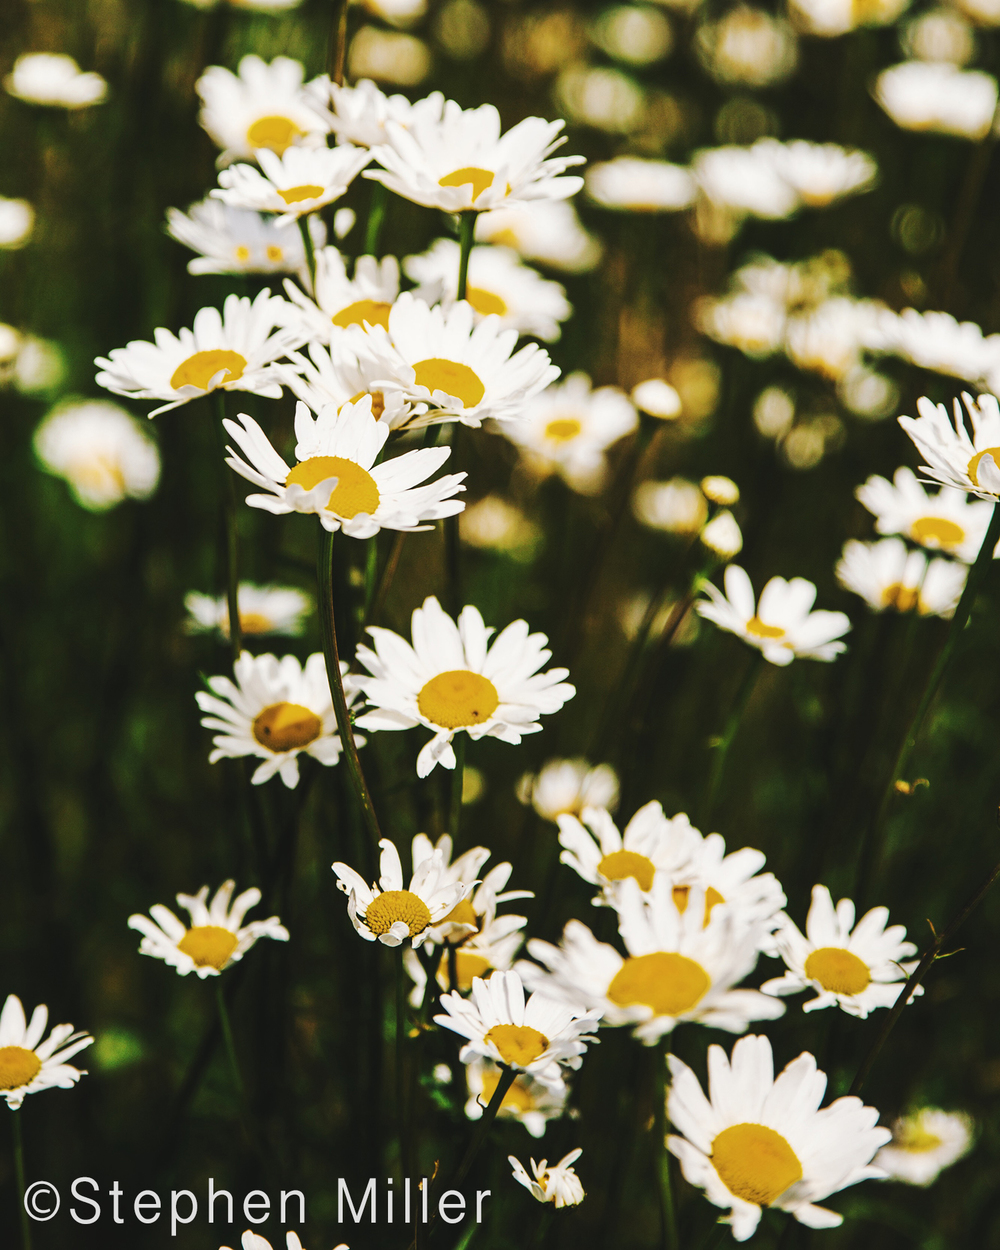 Spring time and the fields are filled with wild daisies.